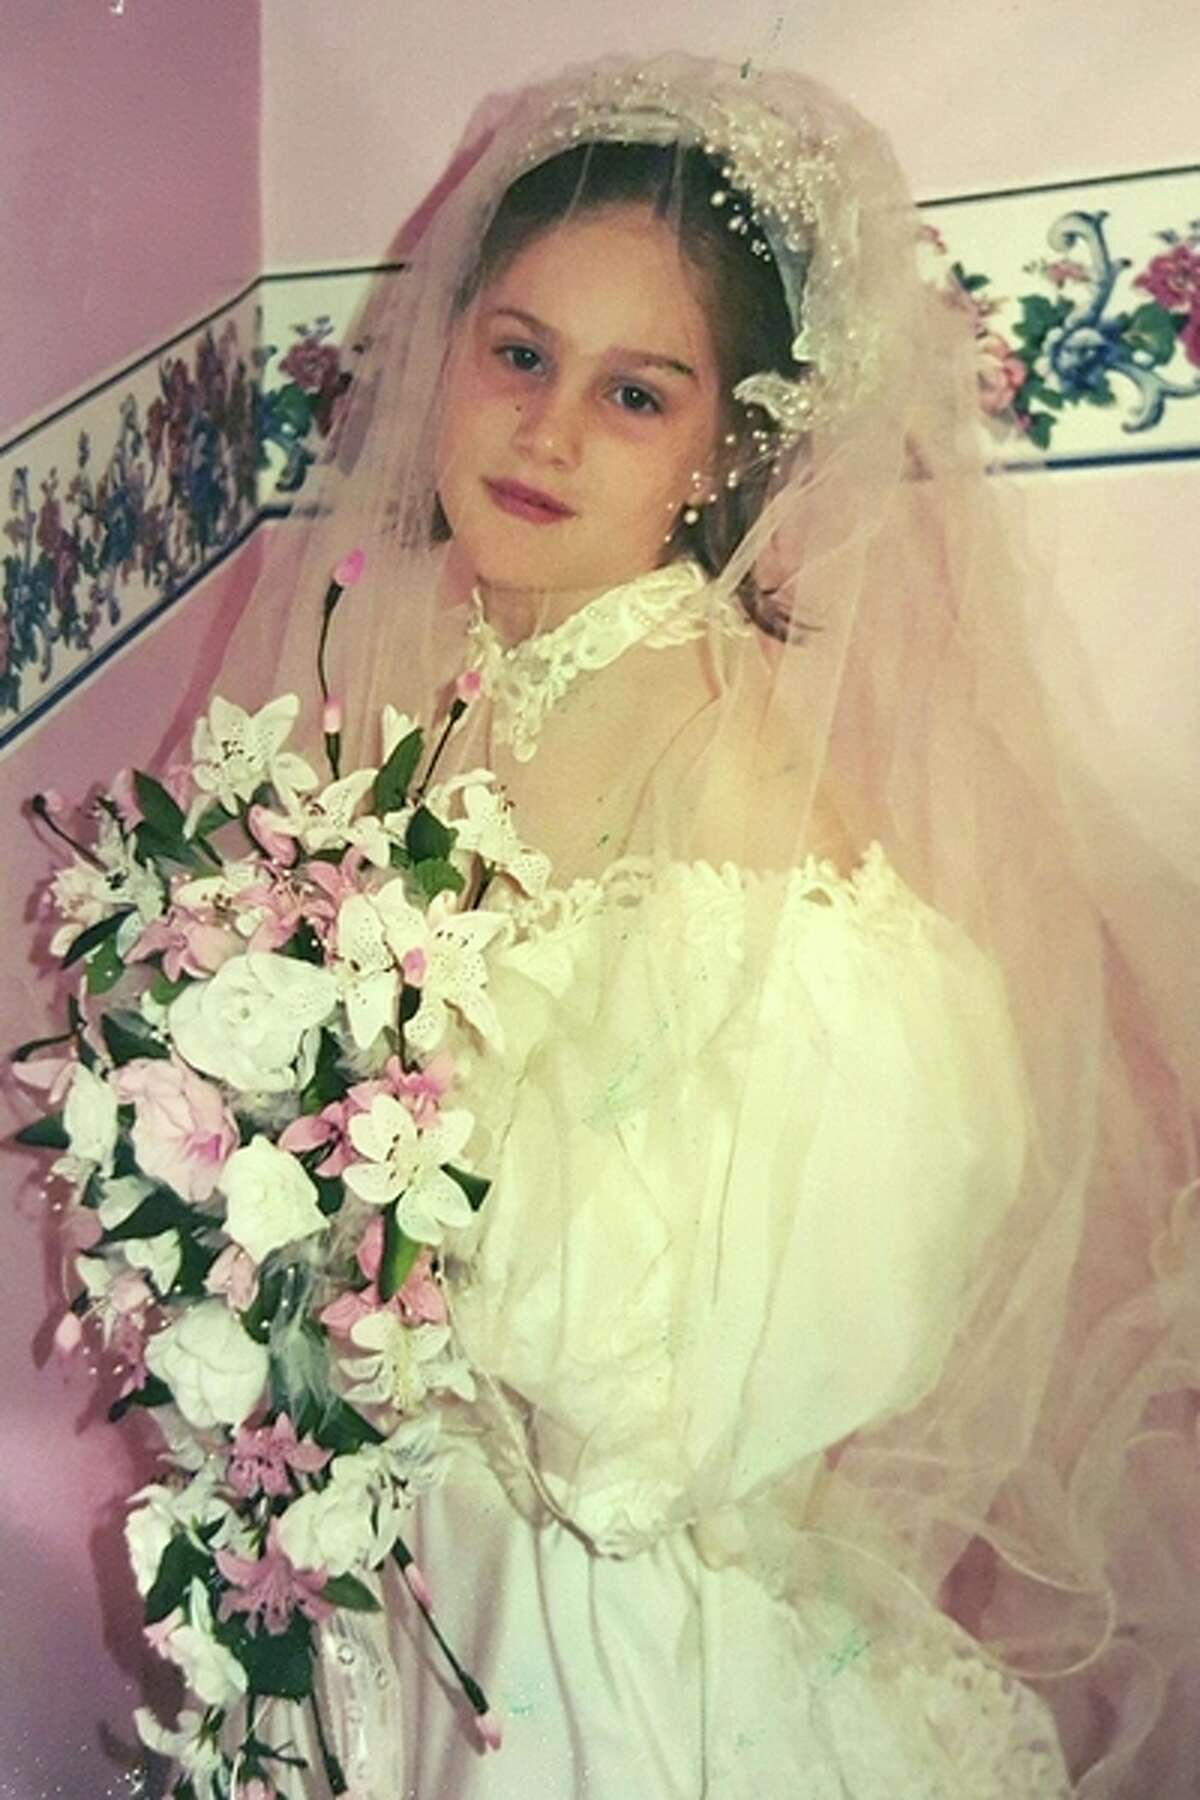 At age 5, Cassie LaBonville, 5, poses for a photo while wearing her mother 's wedding dress and veil. Photo provided.